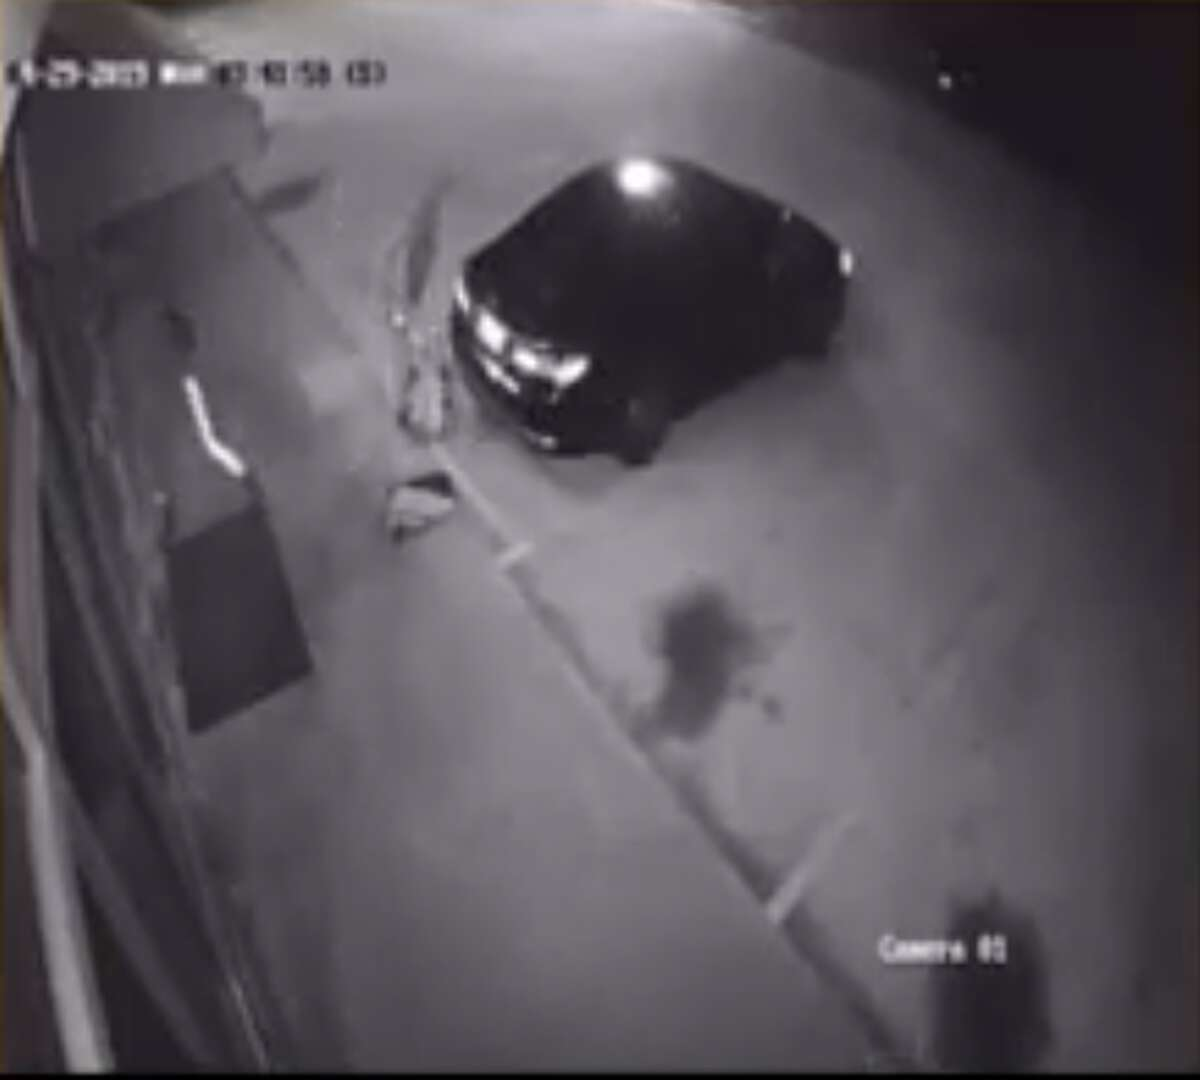 In the video, the suspects appear to break the glass front door and enter the business.